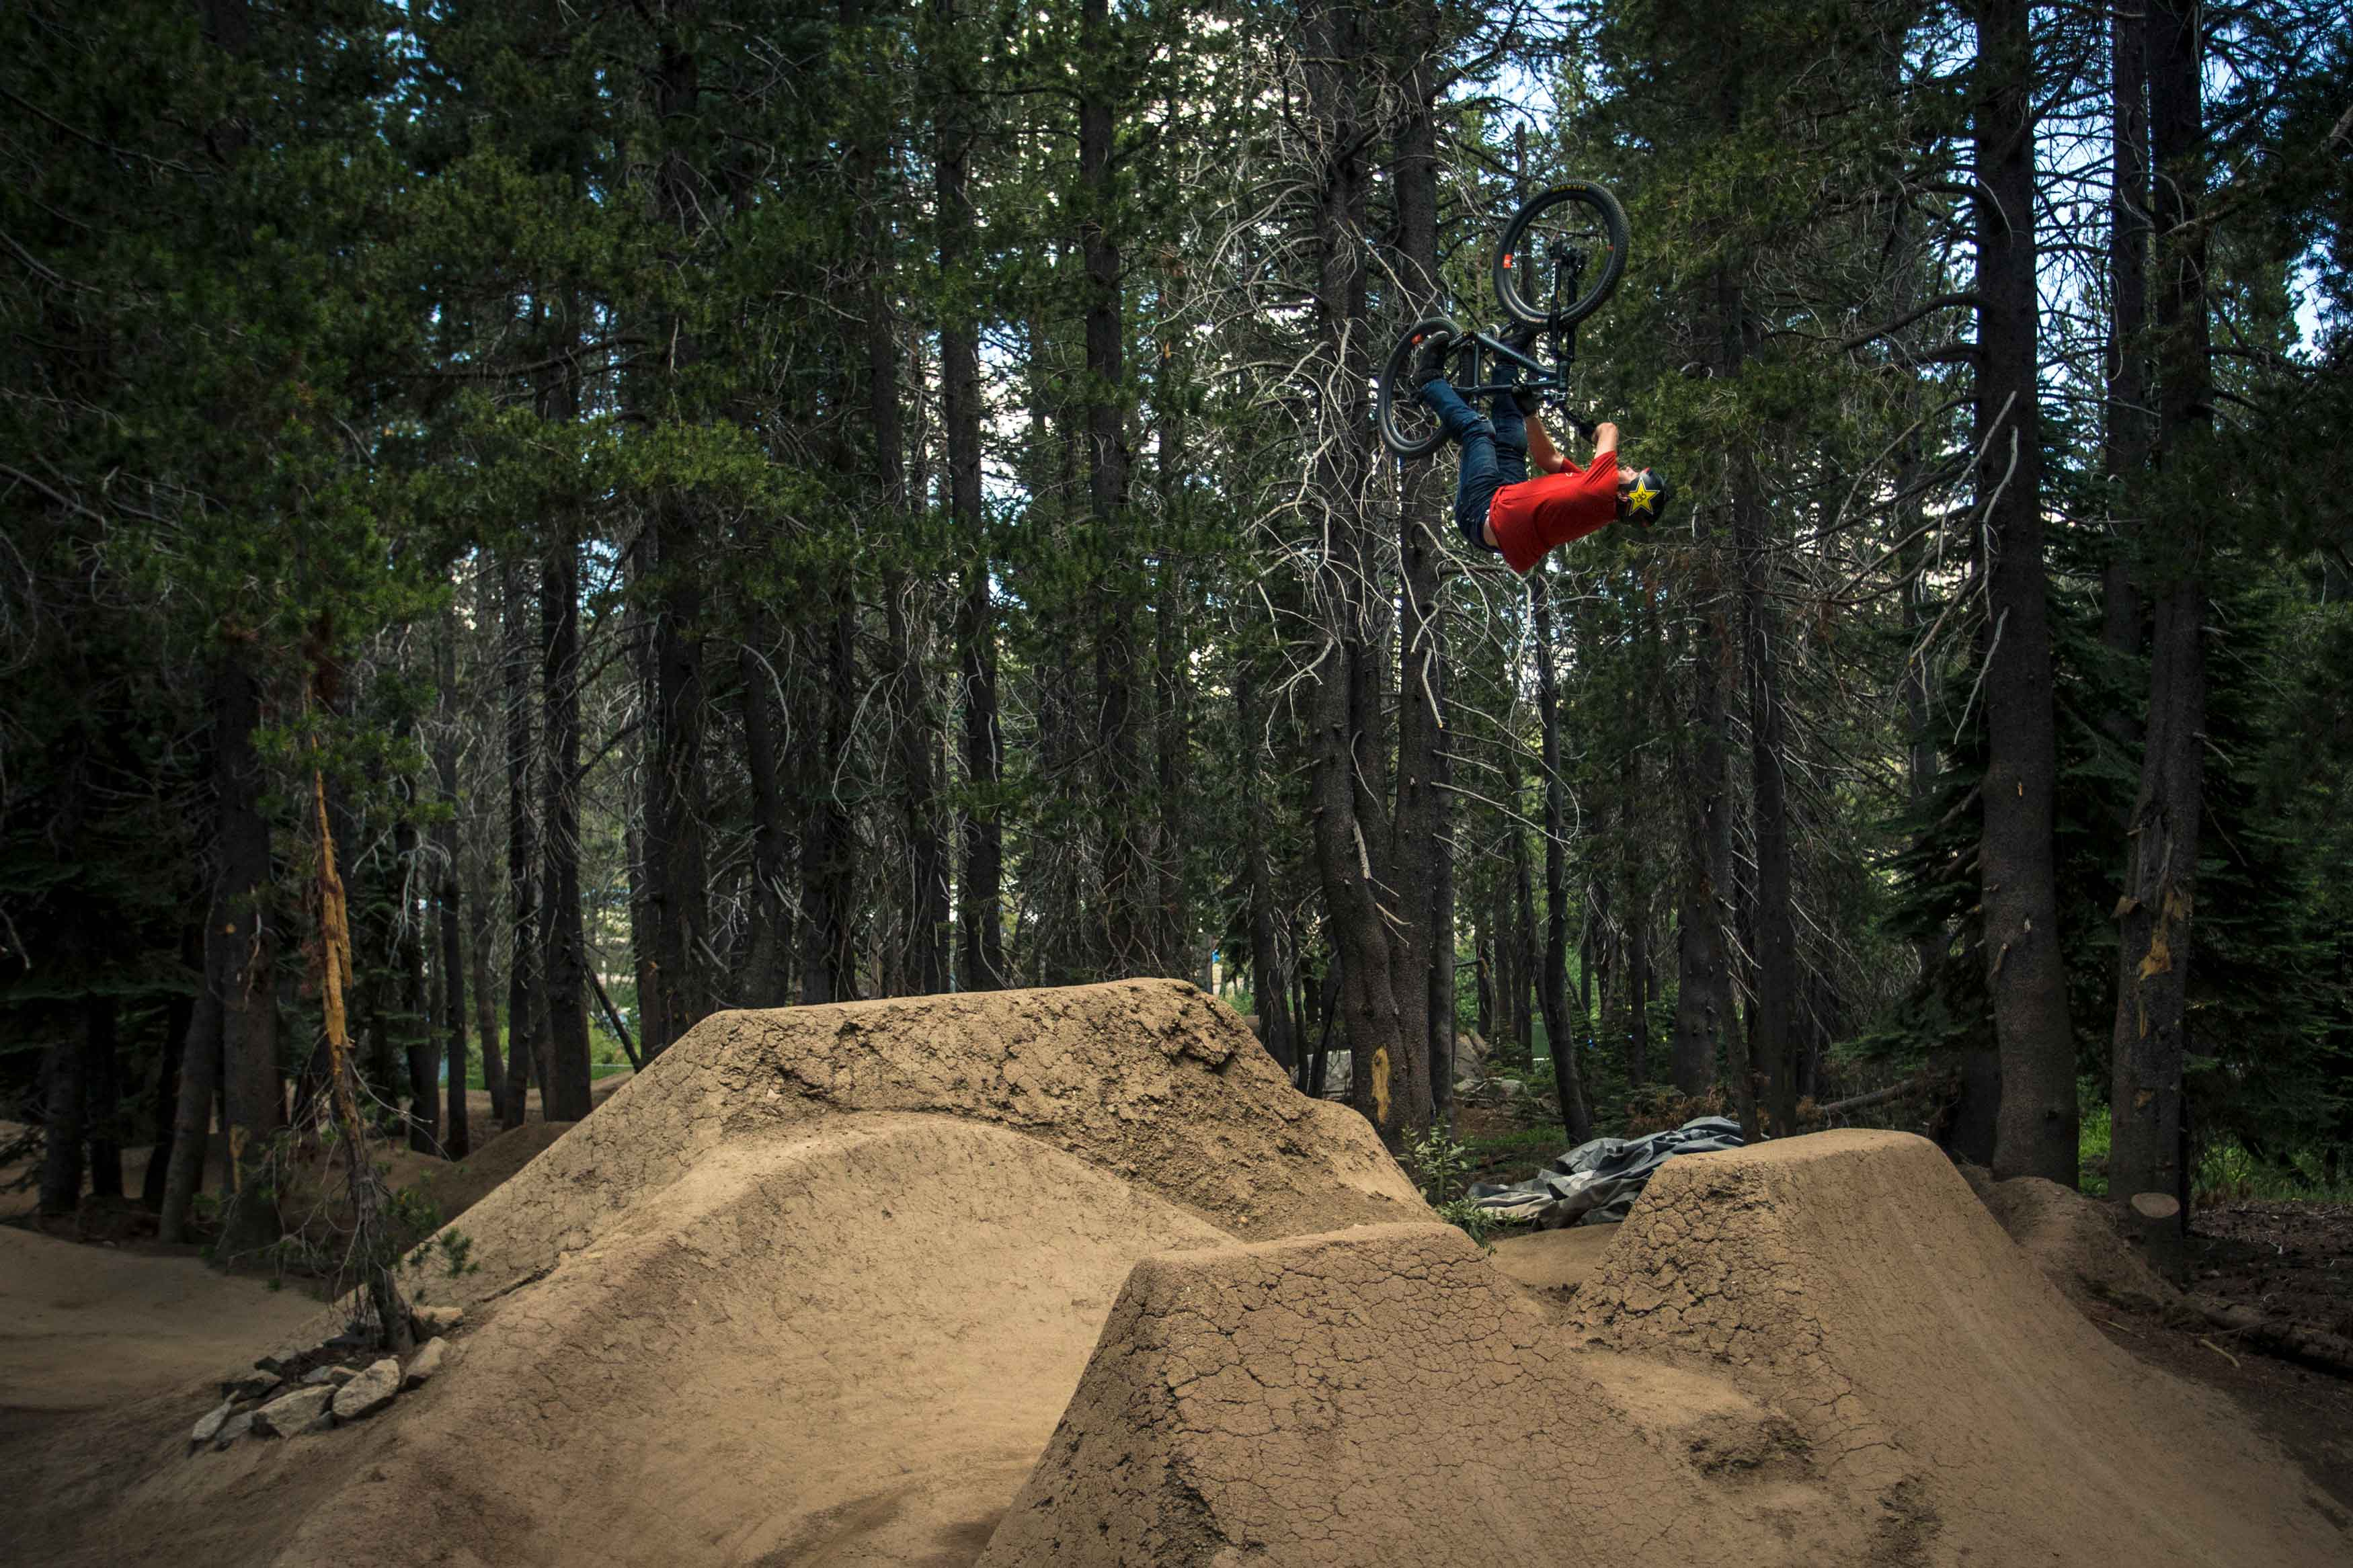 Greg Watts flipping out in Woodward